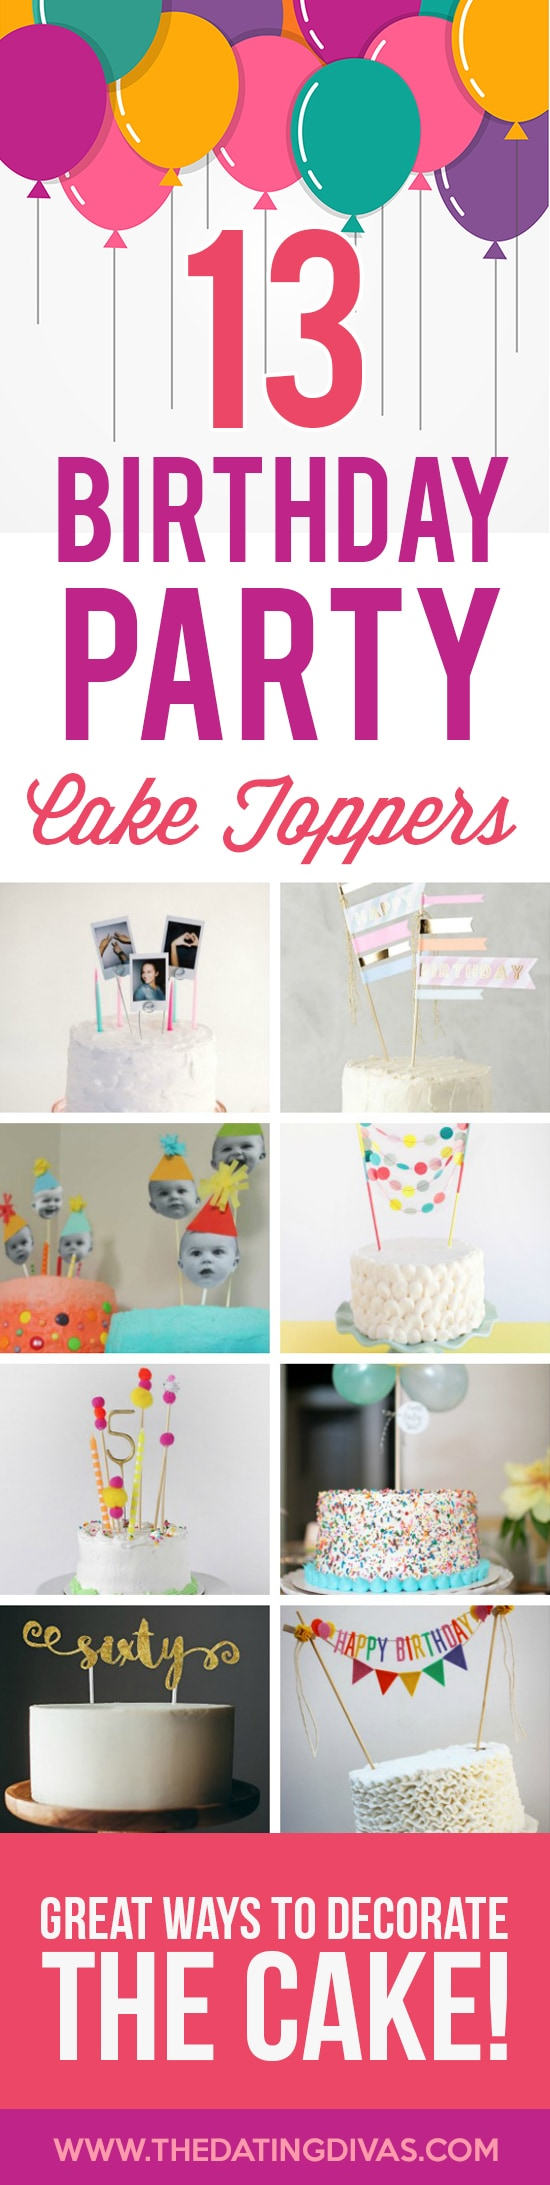 Birthday Party Cake Toppers